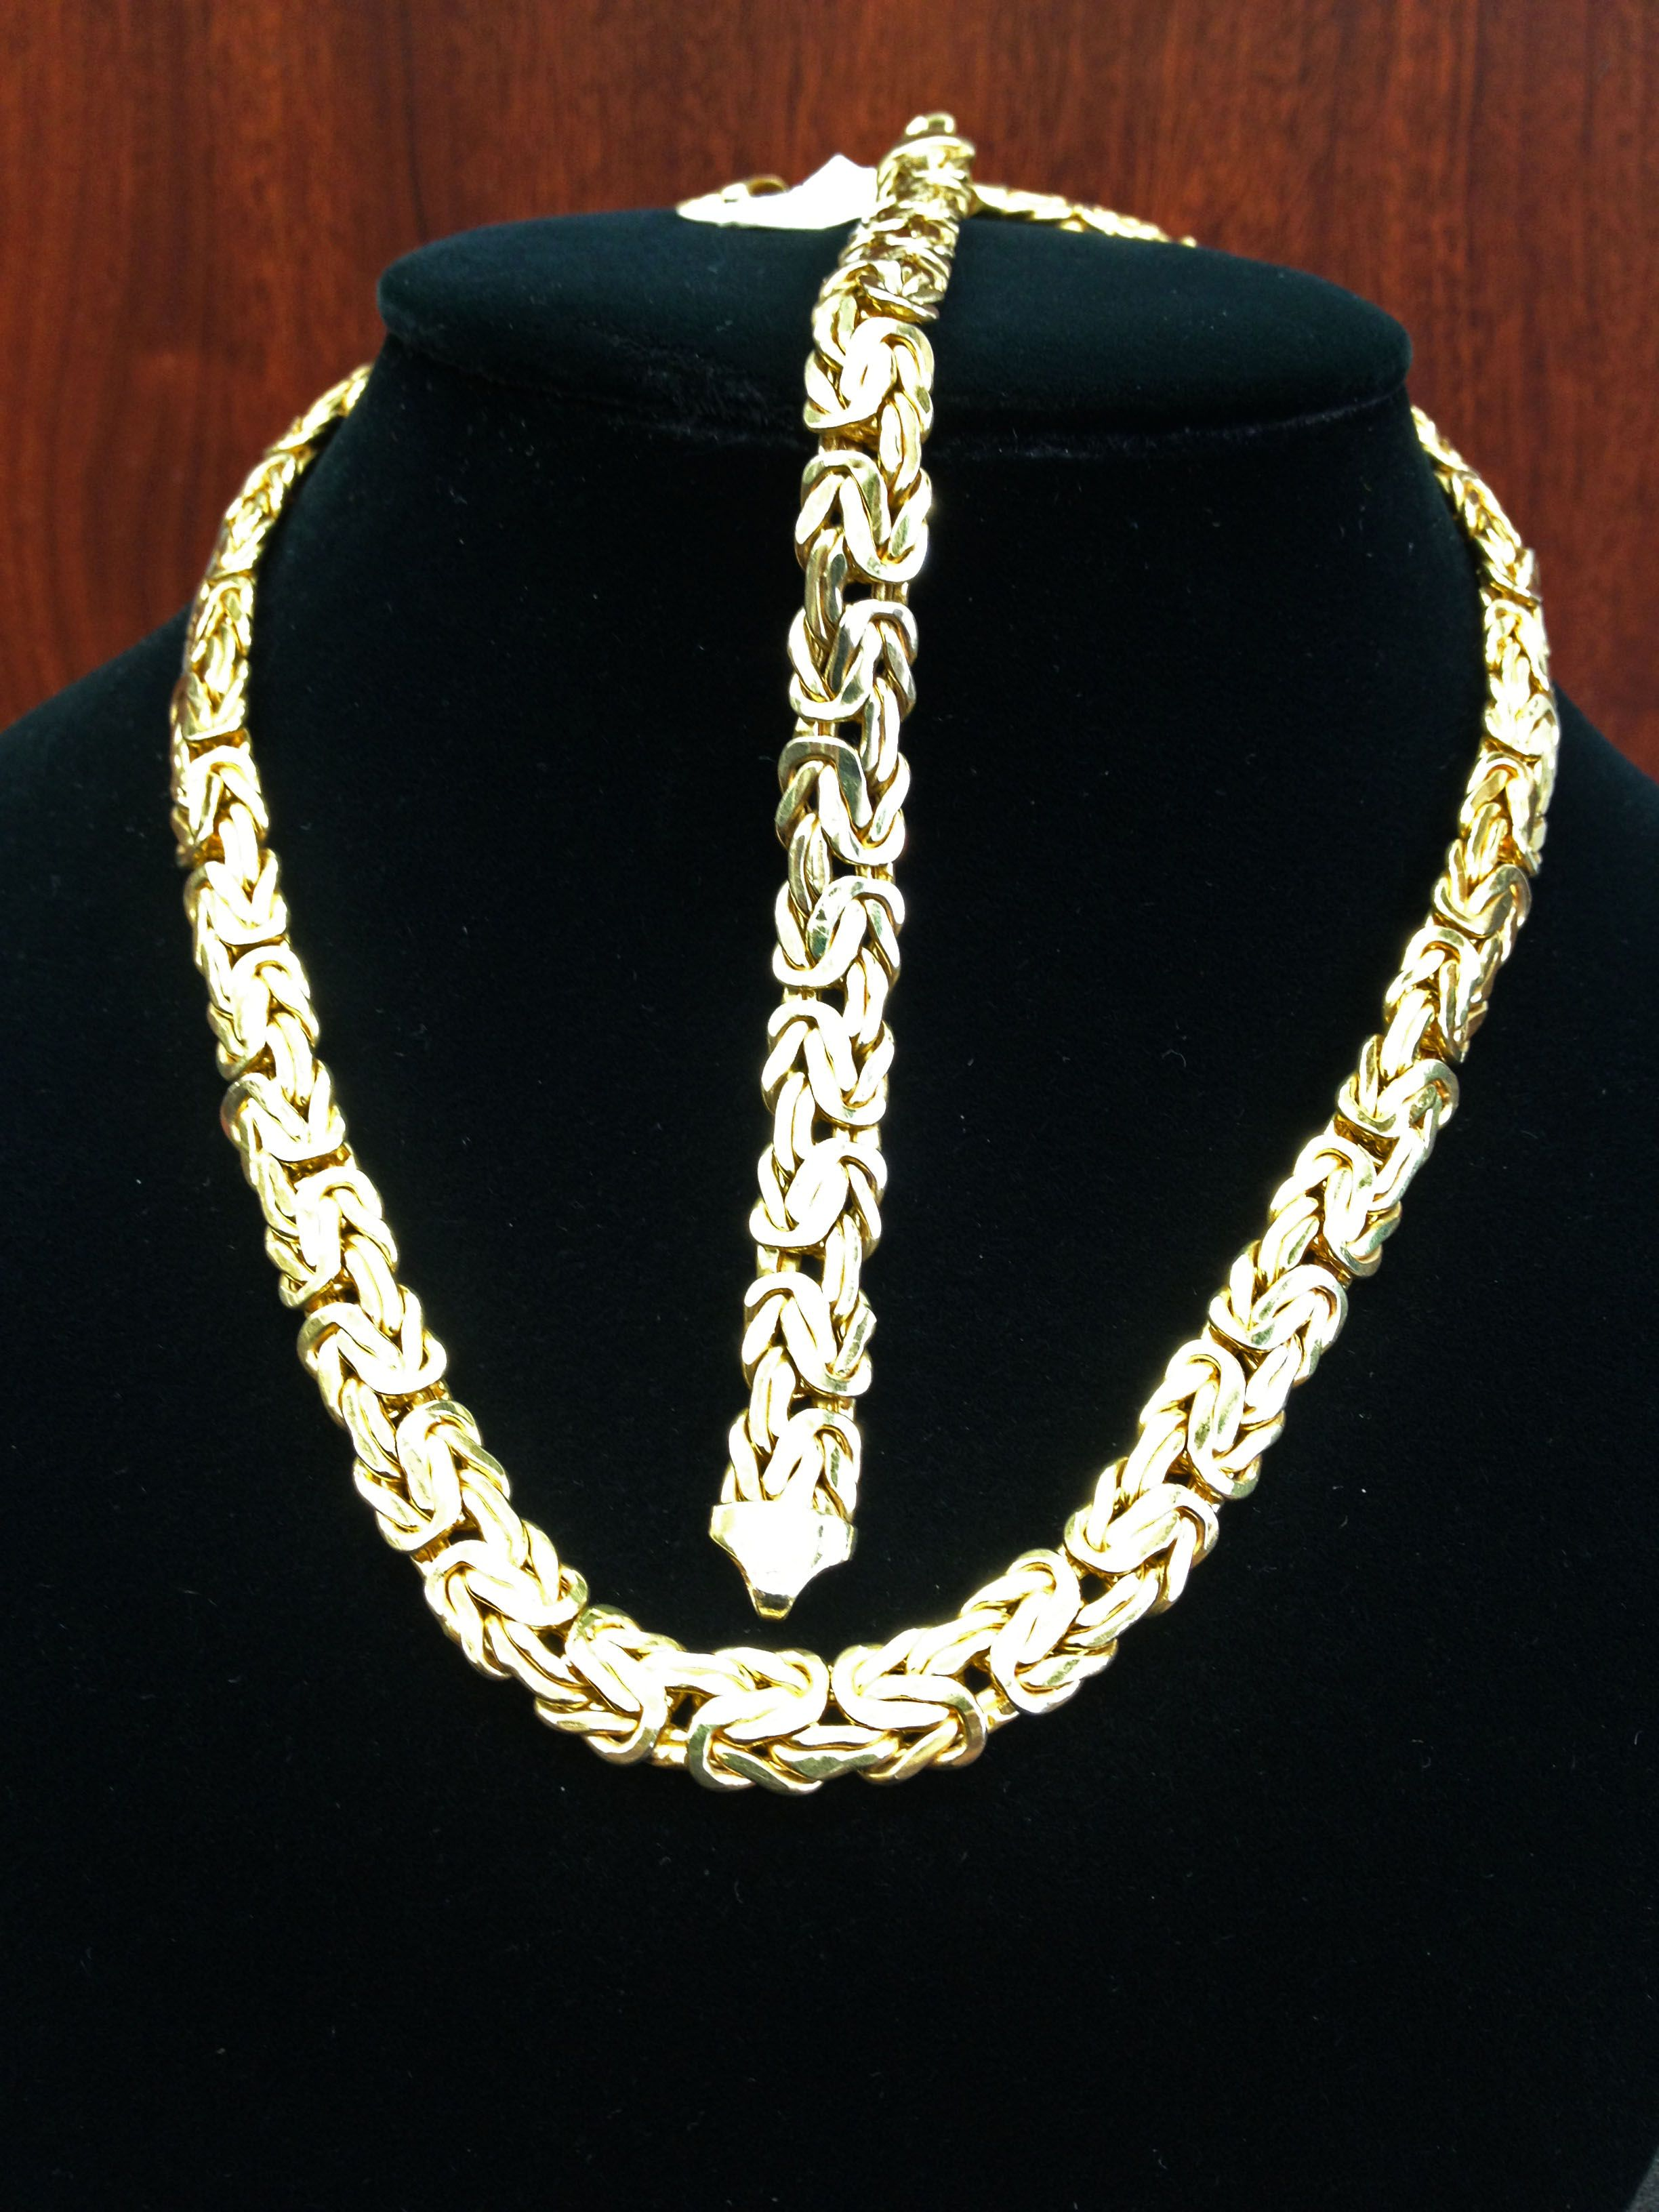 Solid 14k Yellow Gold Byzantine Necklace And Bracelet Set Available At Our At 367 E Fordham Rd Bronx Ny 10458 Byzantine Necklace Necklace Bracelet Set